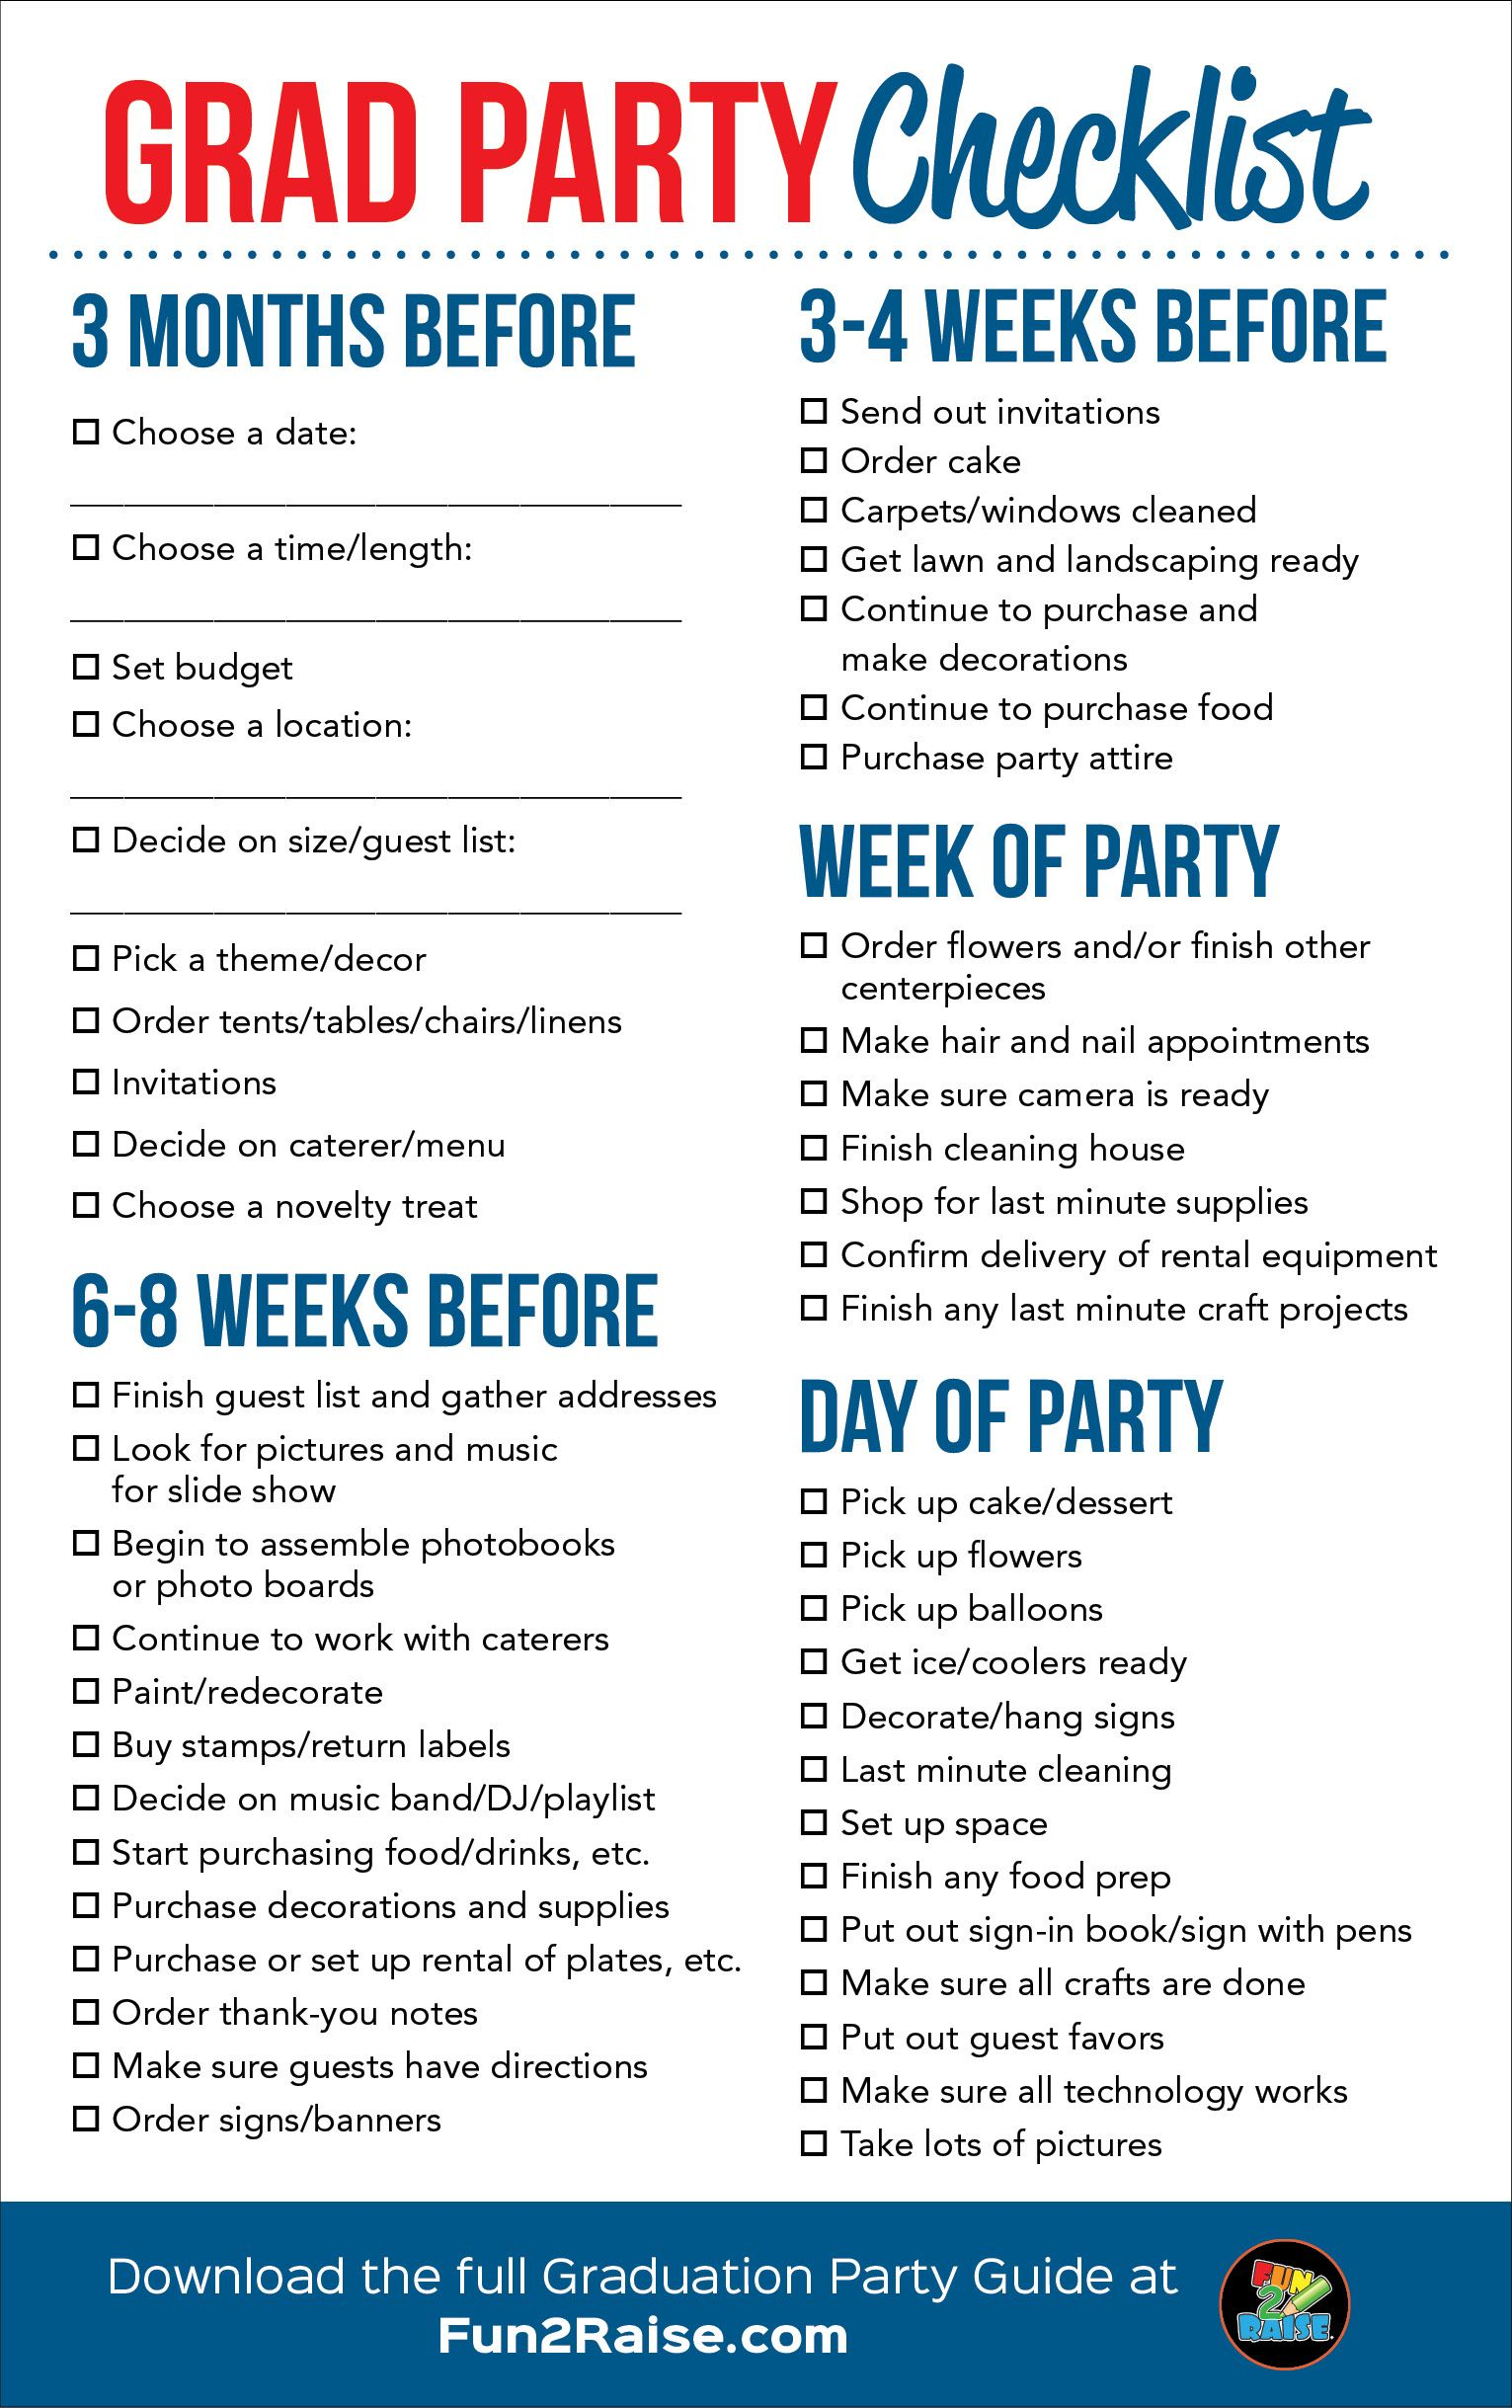 The Perfect Grad Party Checklist For More Helpful Tips On